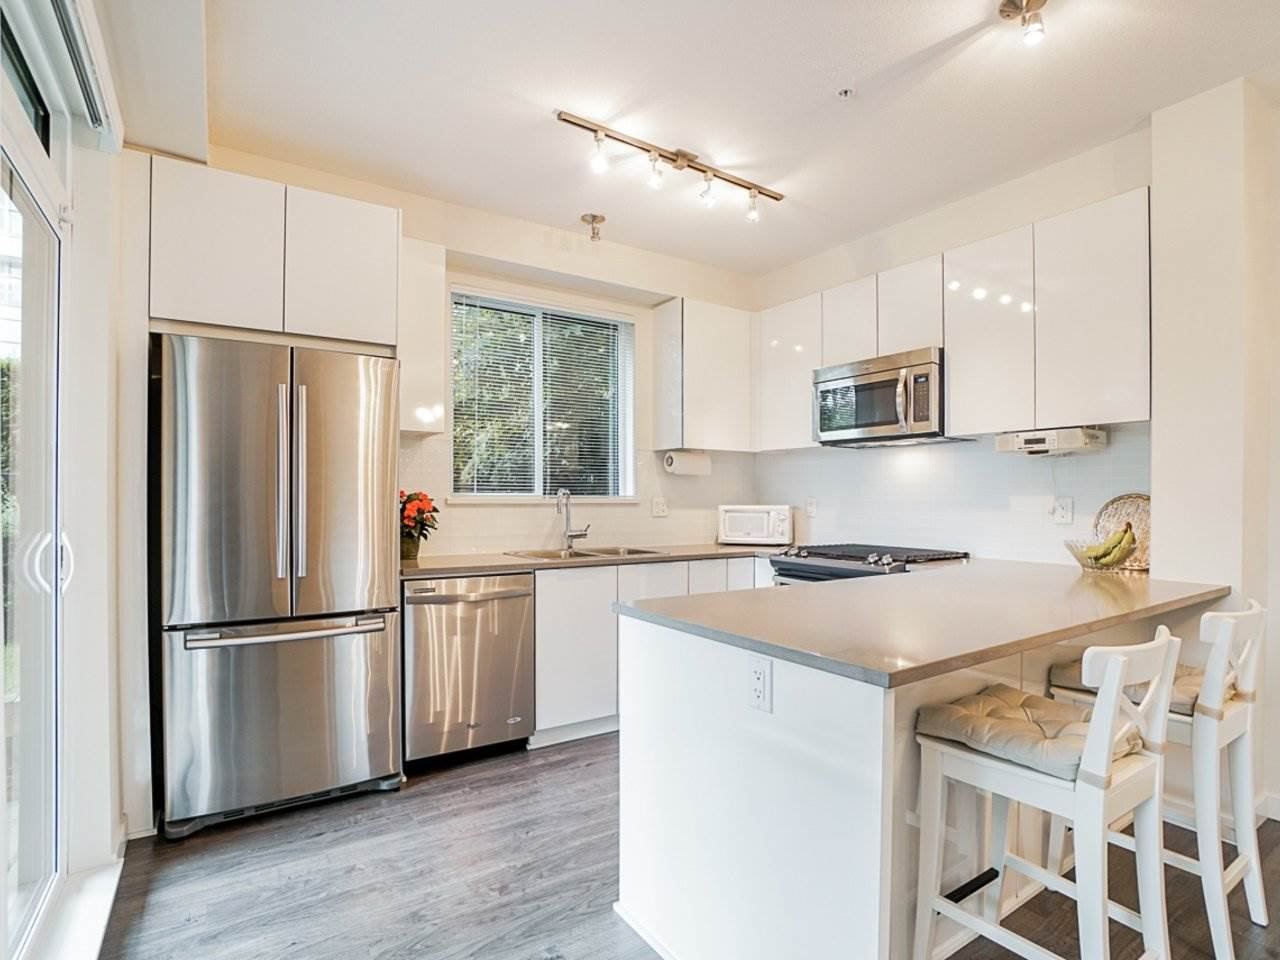 Photo 11: Photos: 108 1151 WINDSOR Mews in Coquitlam: New Horizons Condo for sale : MLS®# R2500299